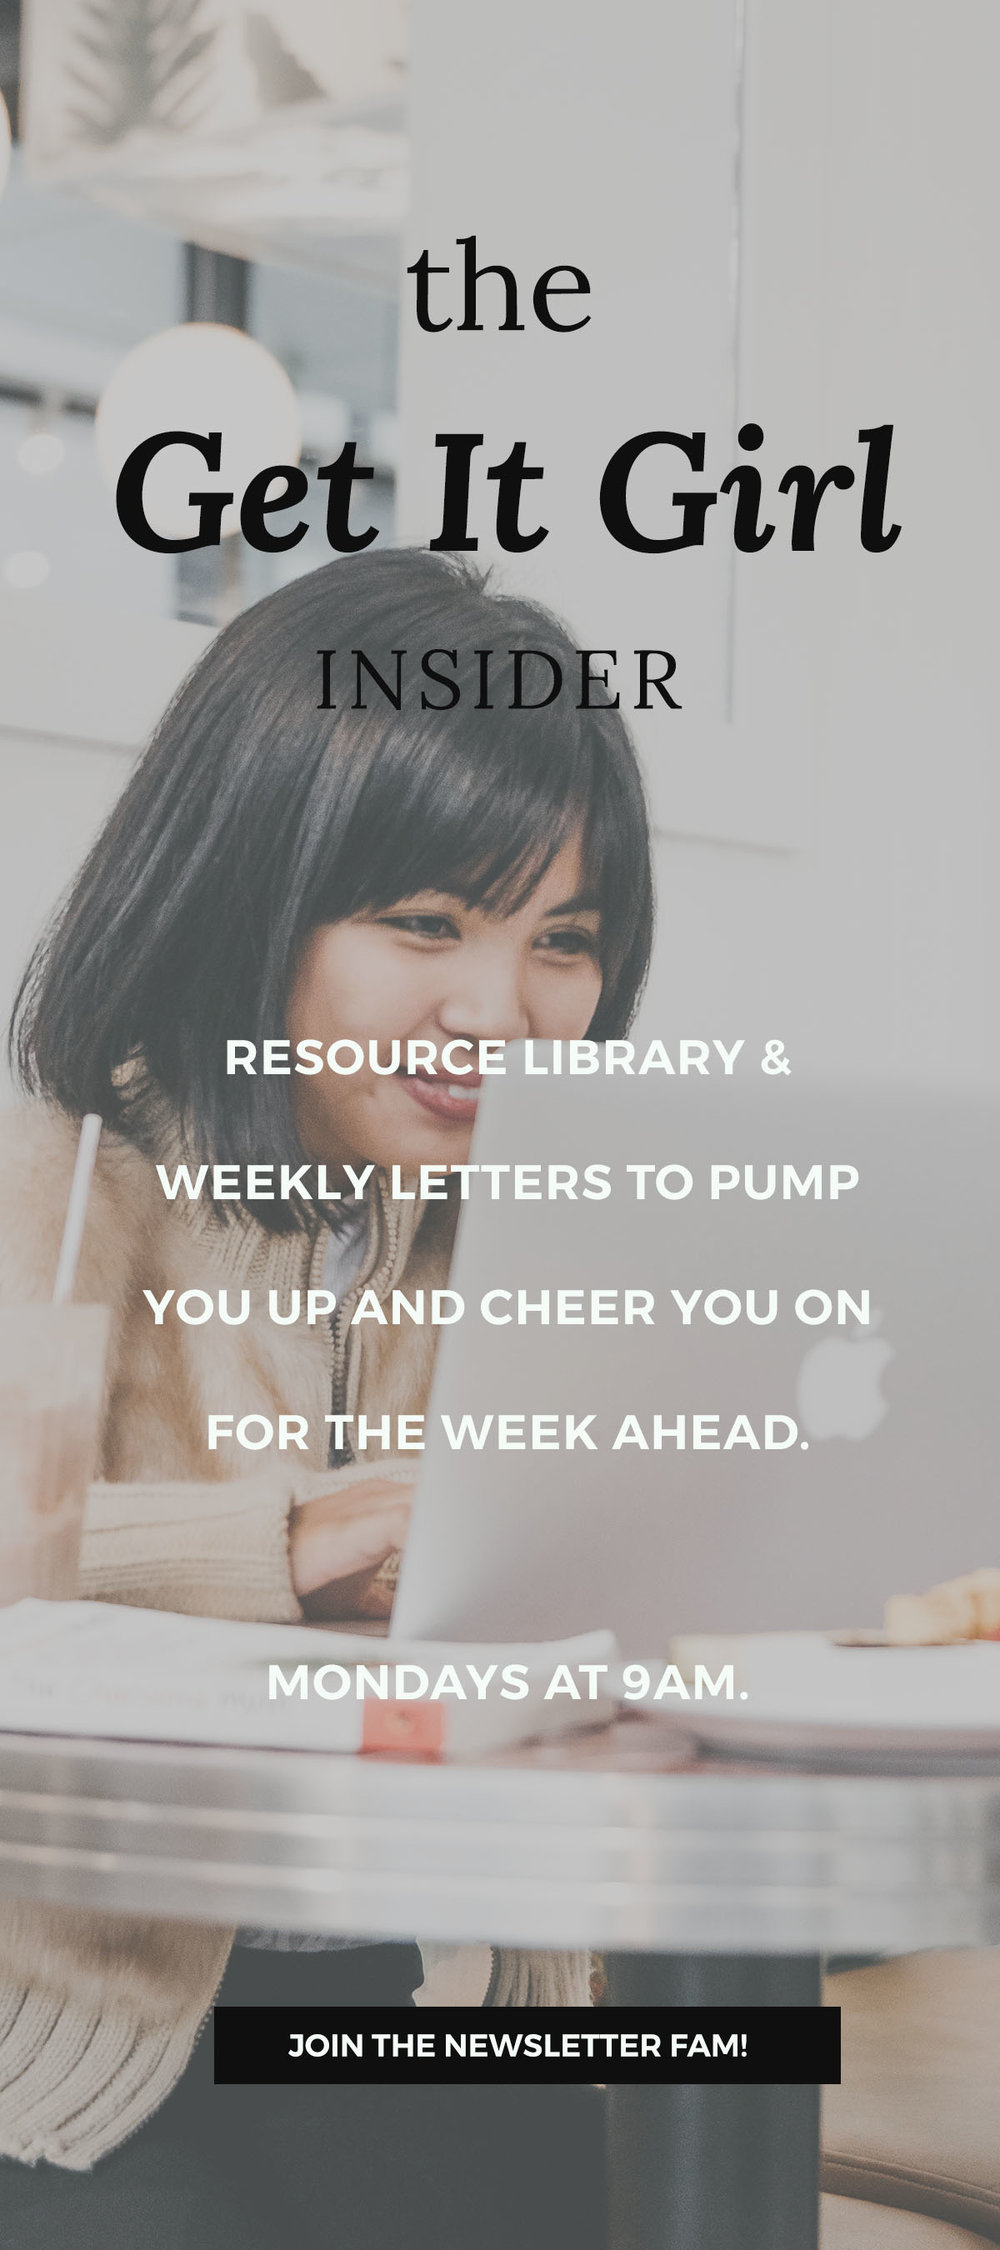 get it girl insider | lifestyle design and personal development | newsletter | Nicole Constante | mailing list | free resource library.jpg